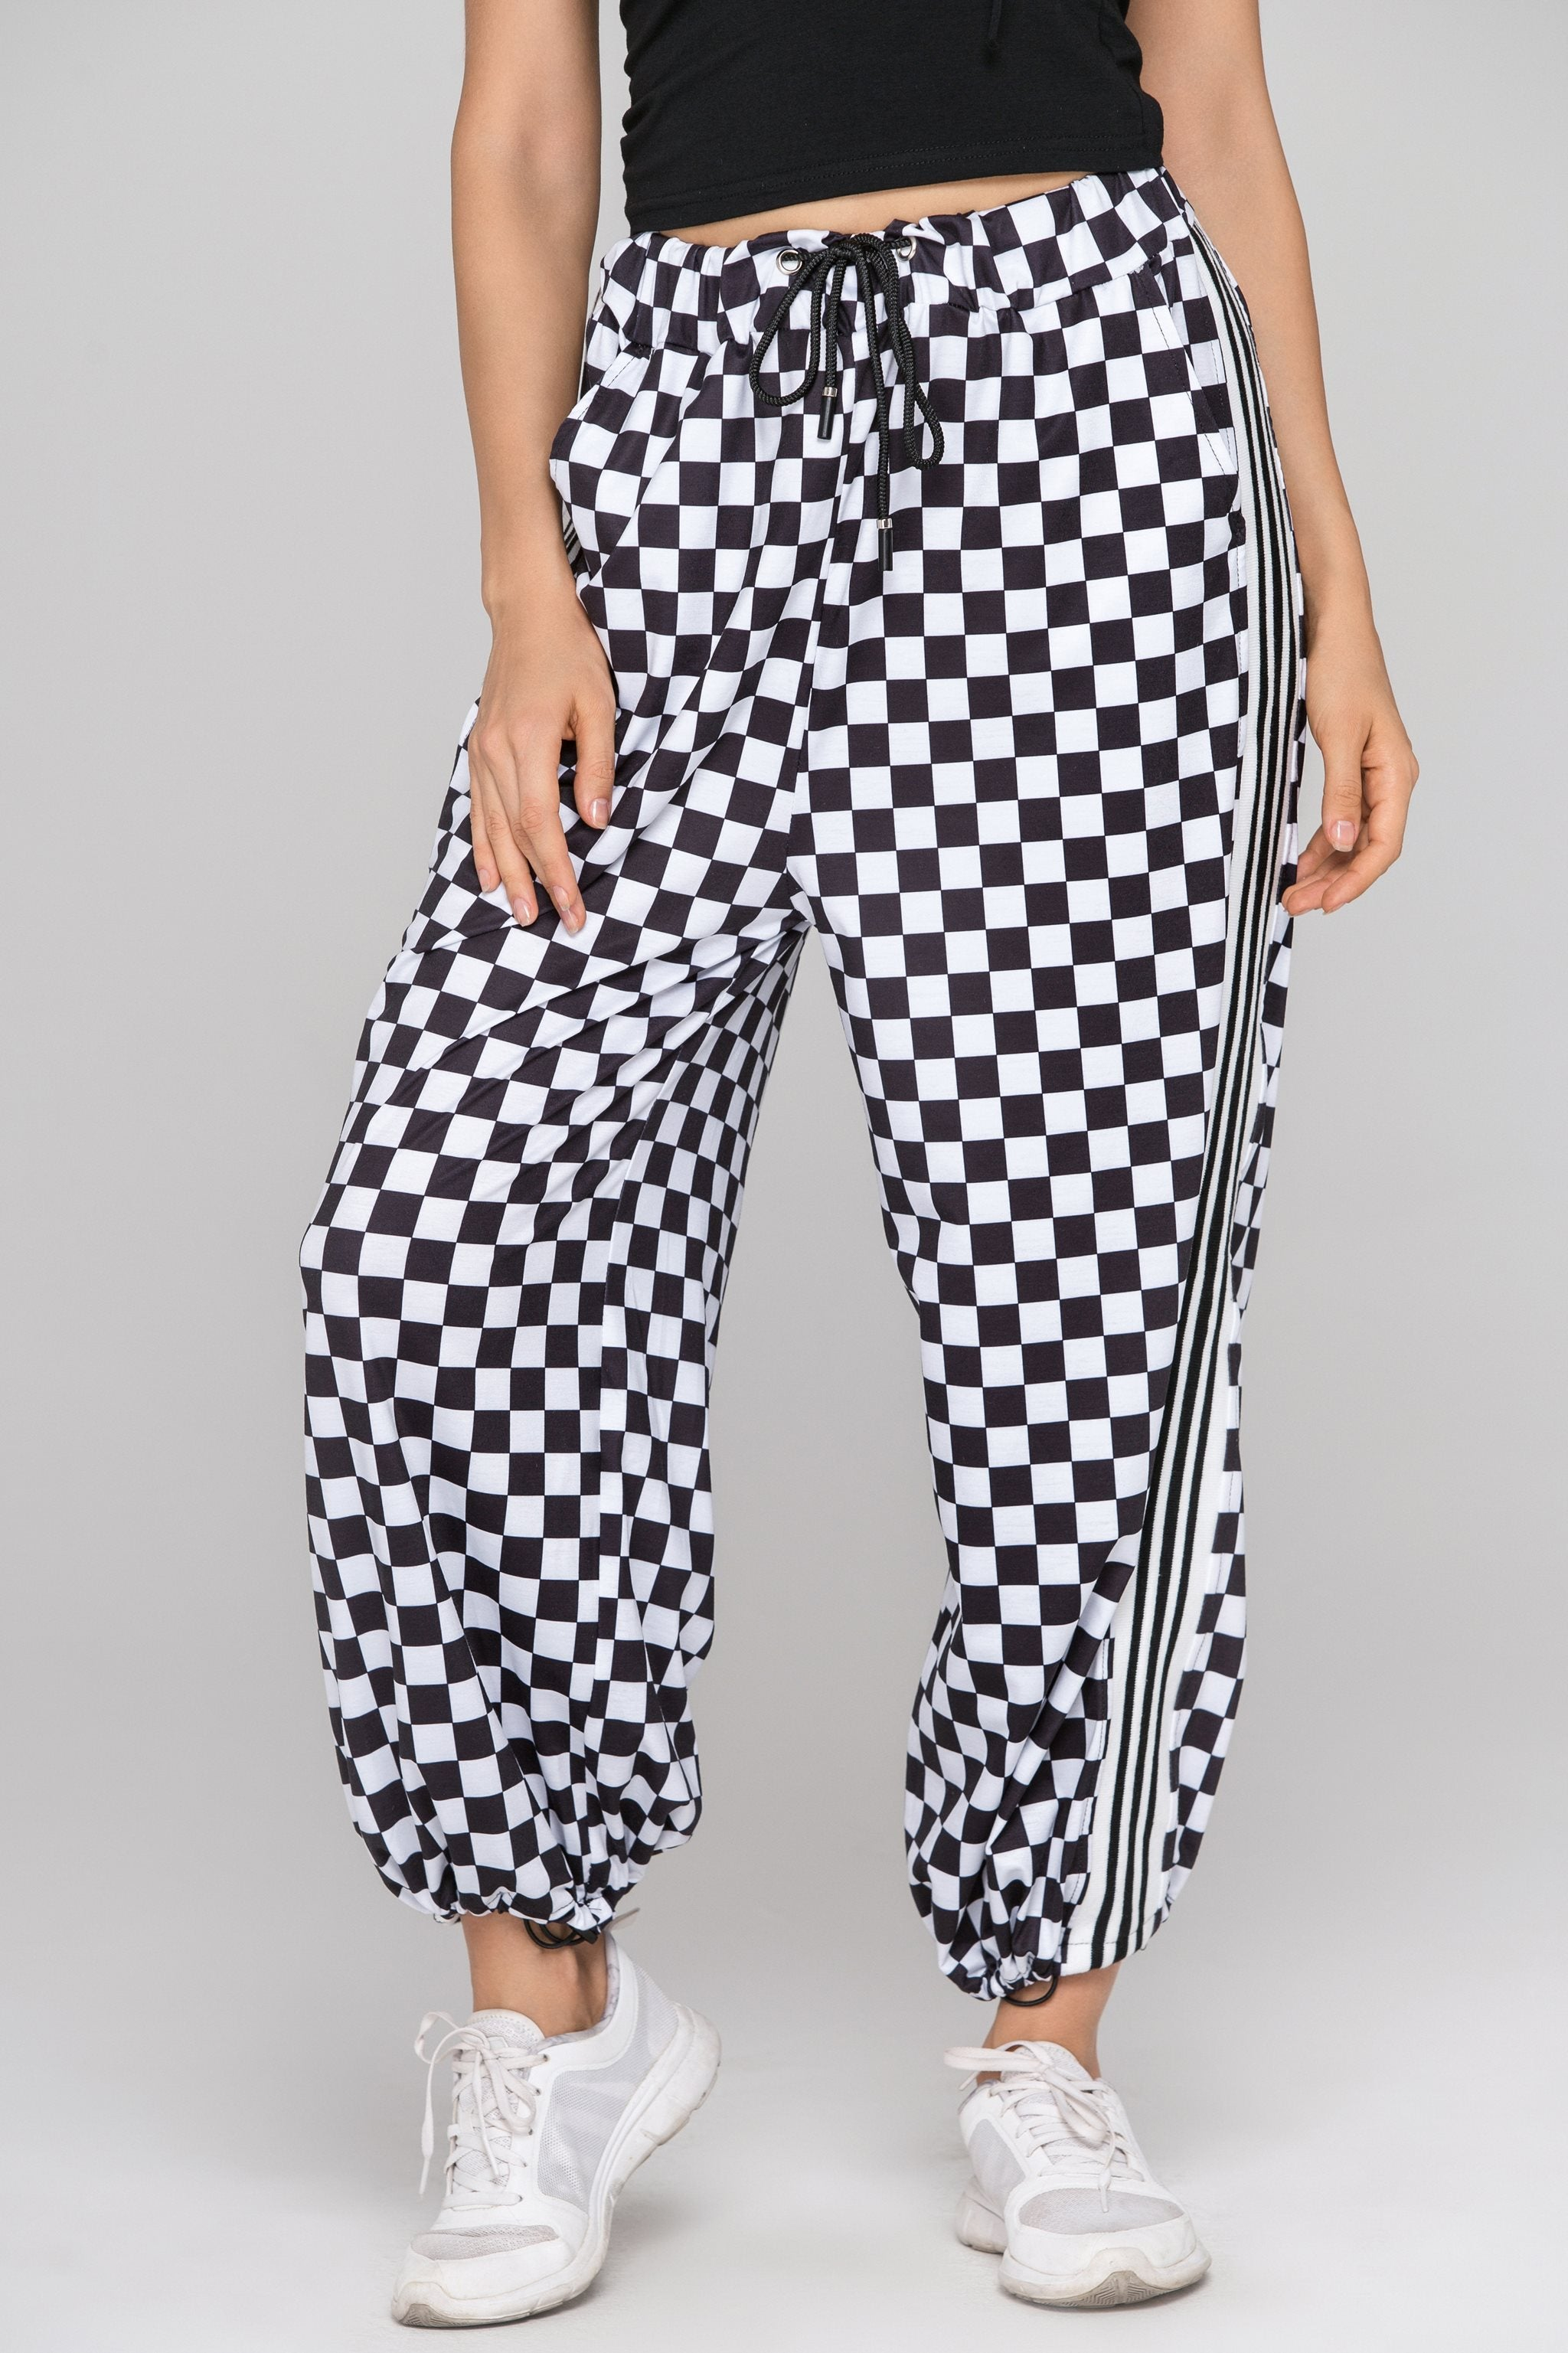 Black and White Checkered Drawstring Joggers